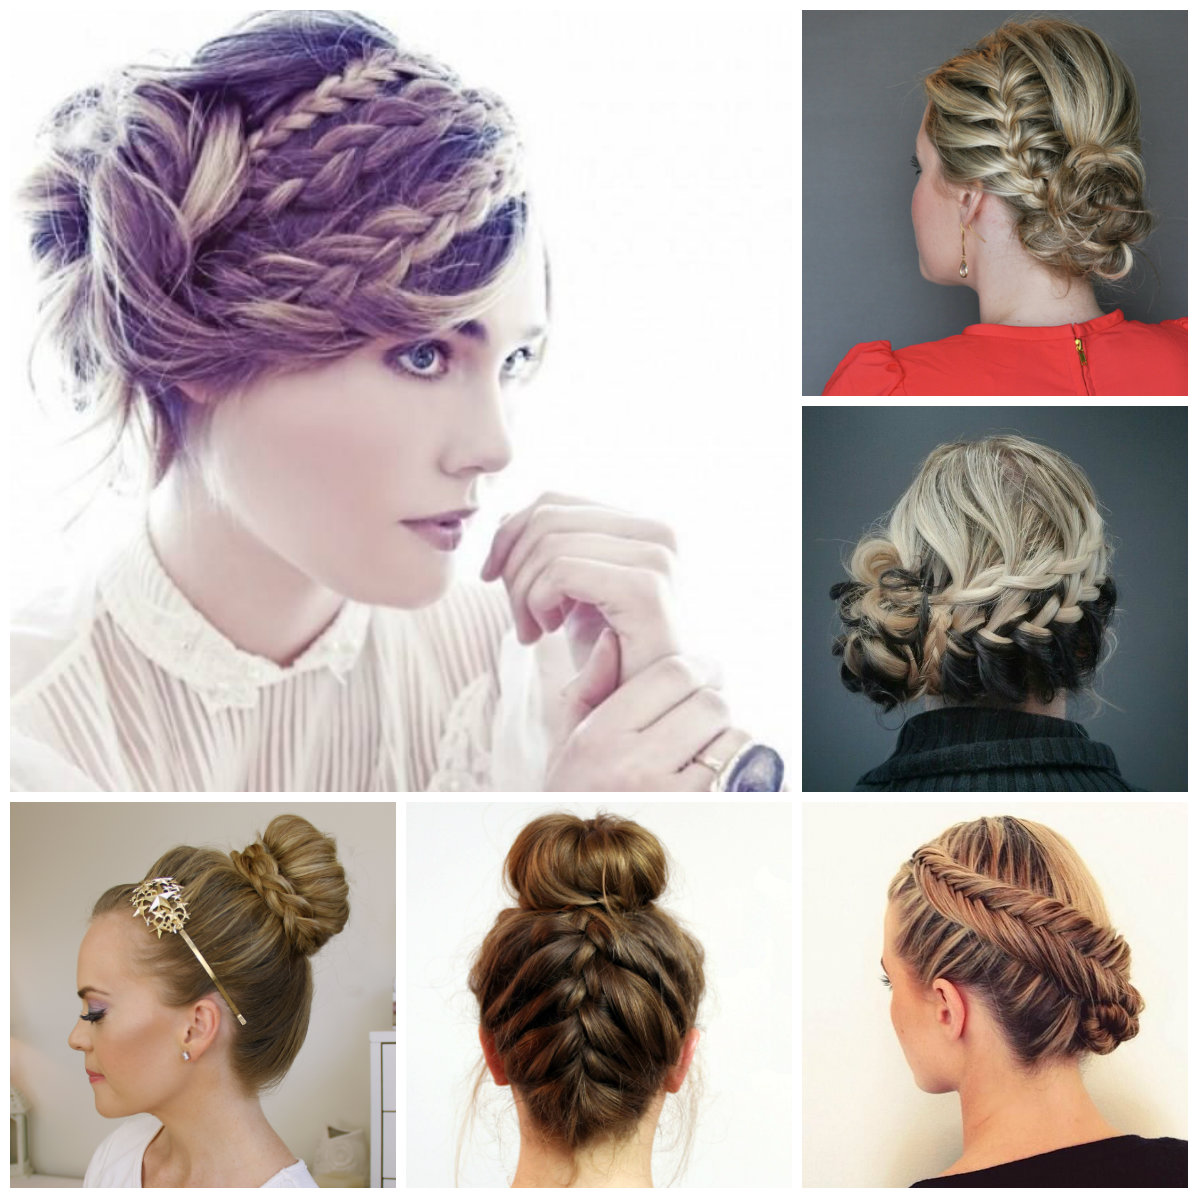 braided updo hairstyles 2016